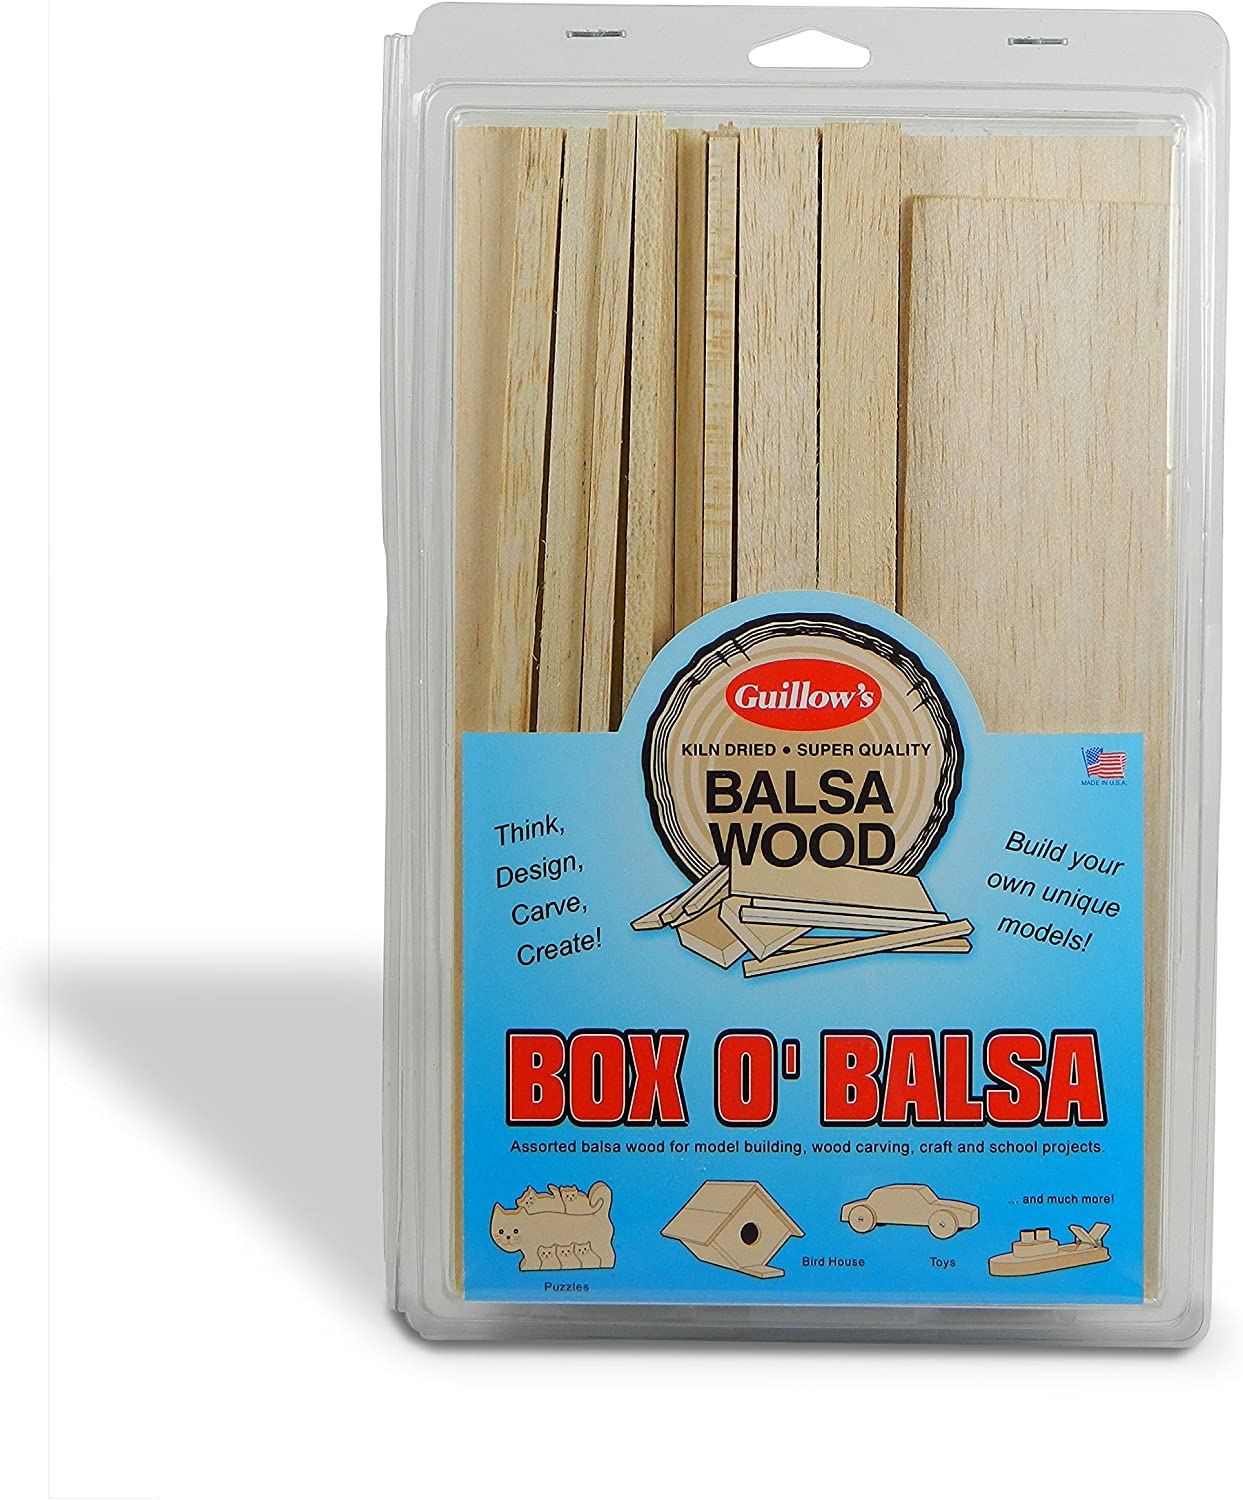 Guillow's Box O' Balsa Model Kit, Small, Random Sizes, 1-Pound Box